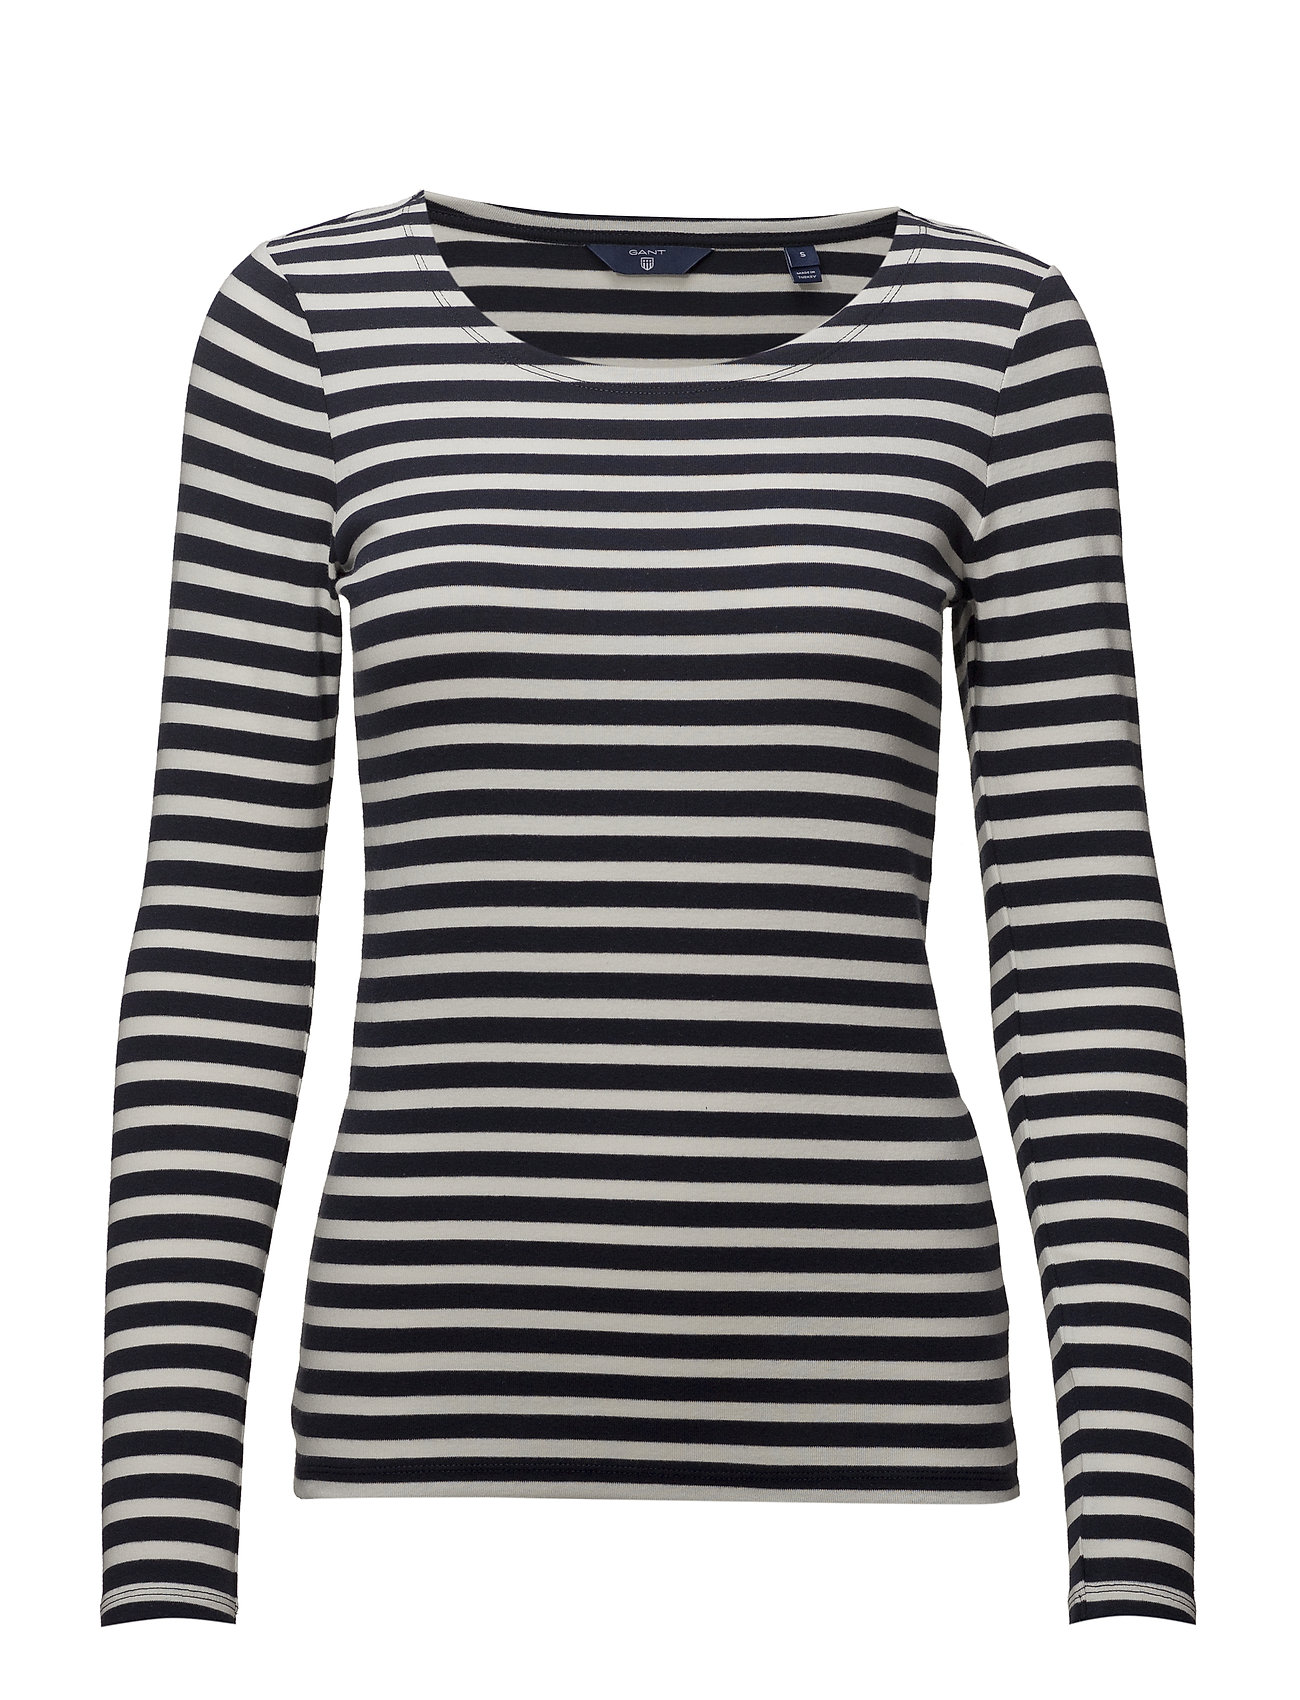 Gant 1X1 RIB LS T-SHIRT - EVENING BLUE